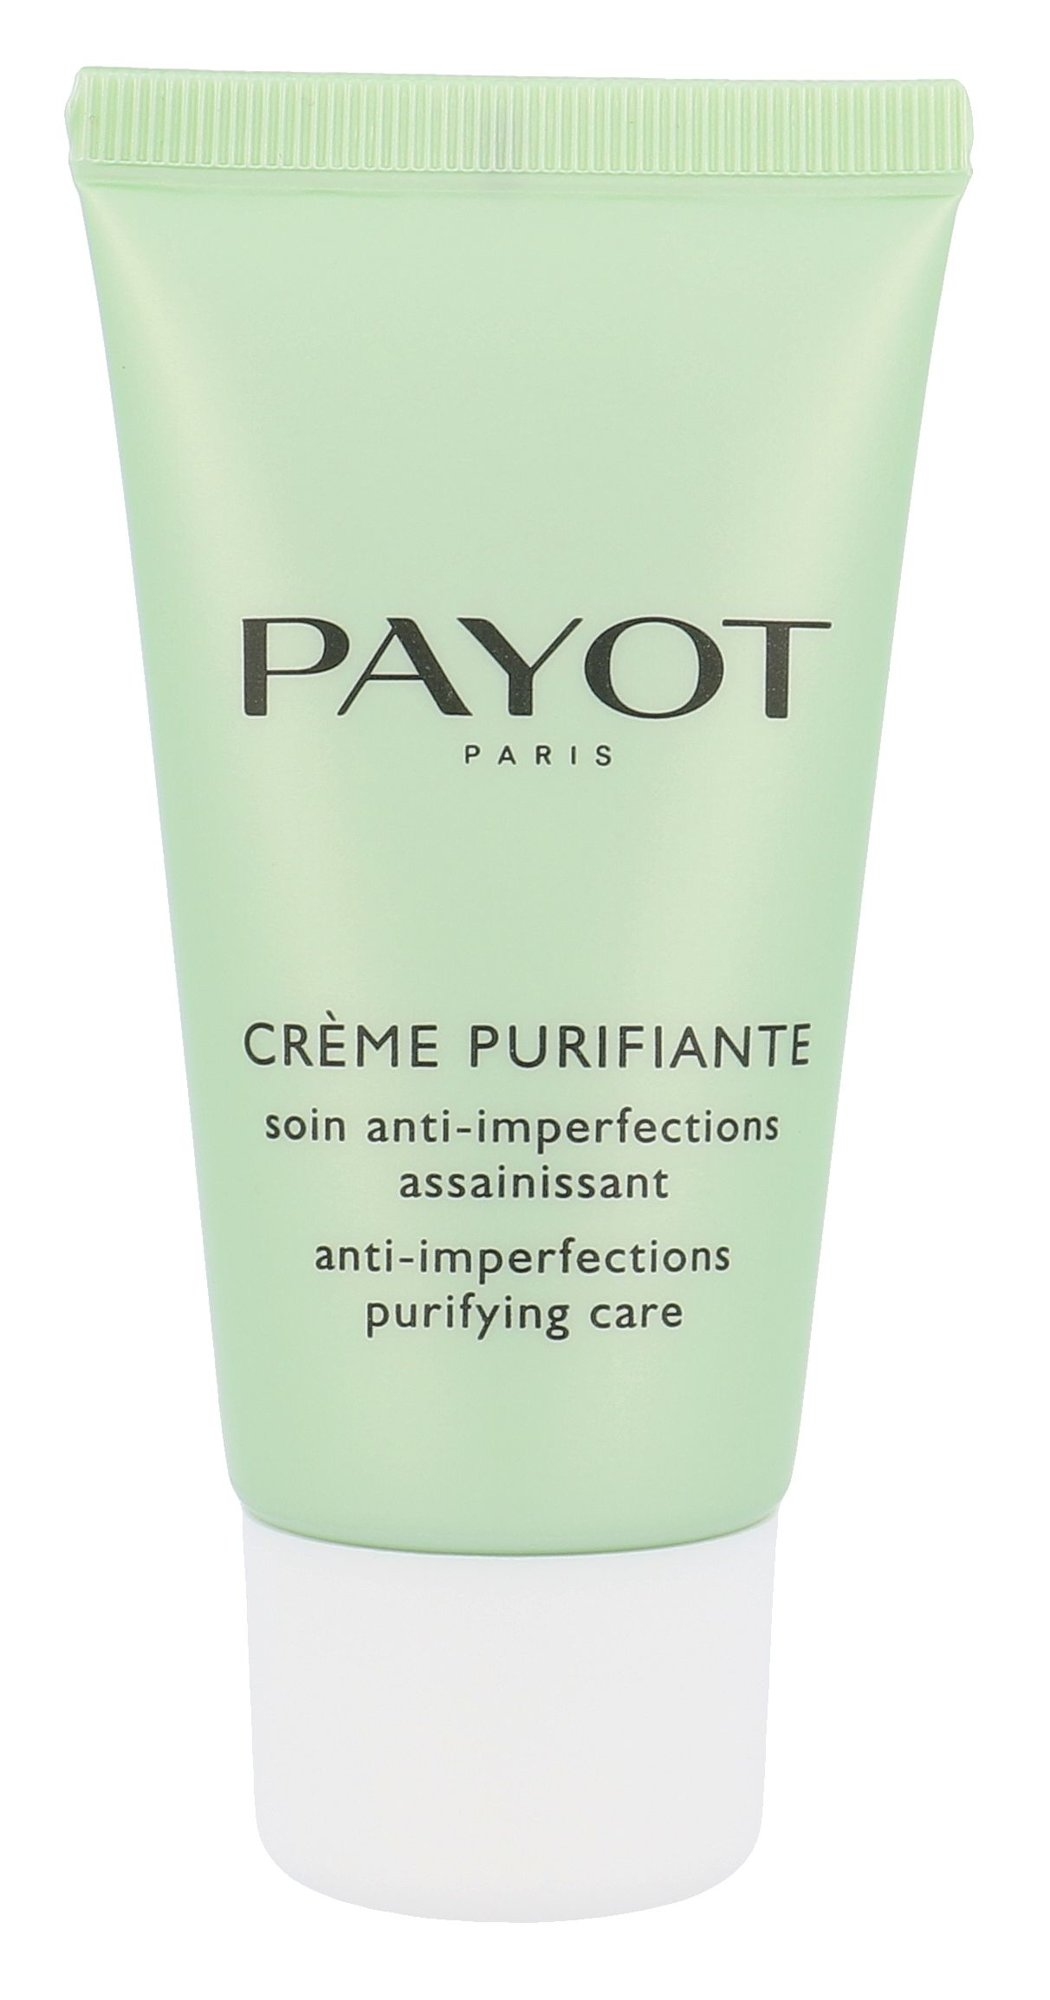 PAYOT Expert Points Noirs Cosmetic 50ml  Creme Purifiante Anti-Imperfections Care